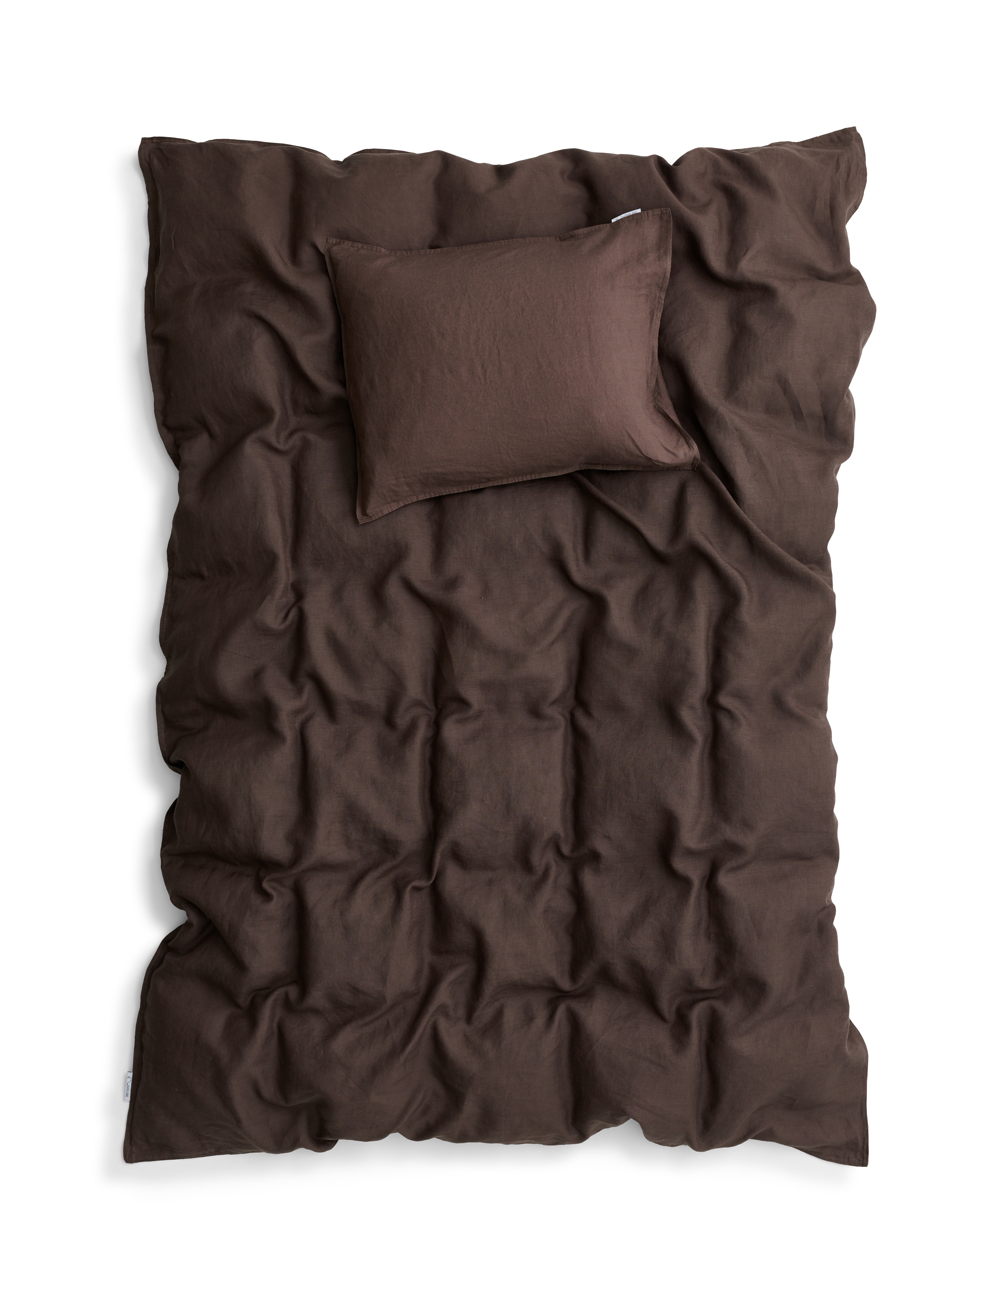 Duvet Cover Set Linen Dark Brown